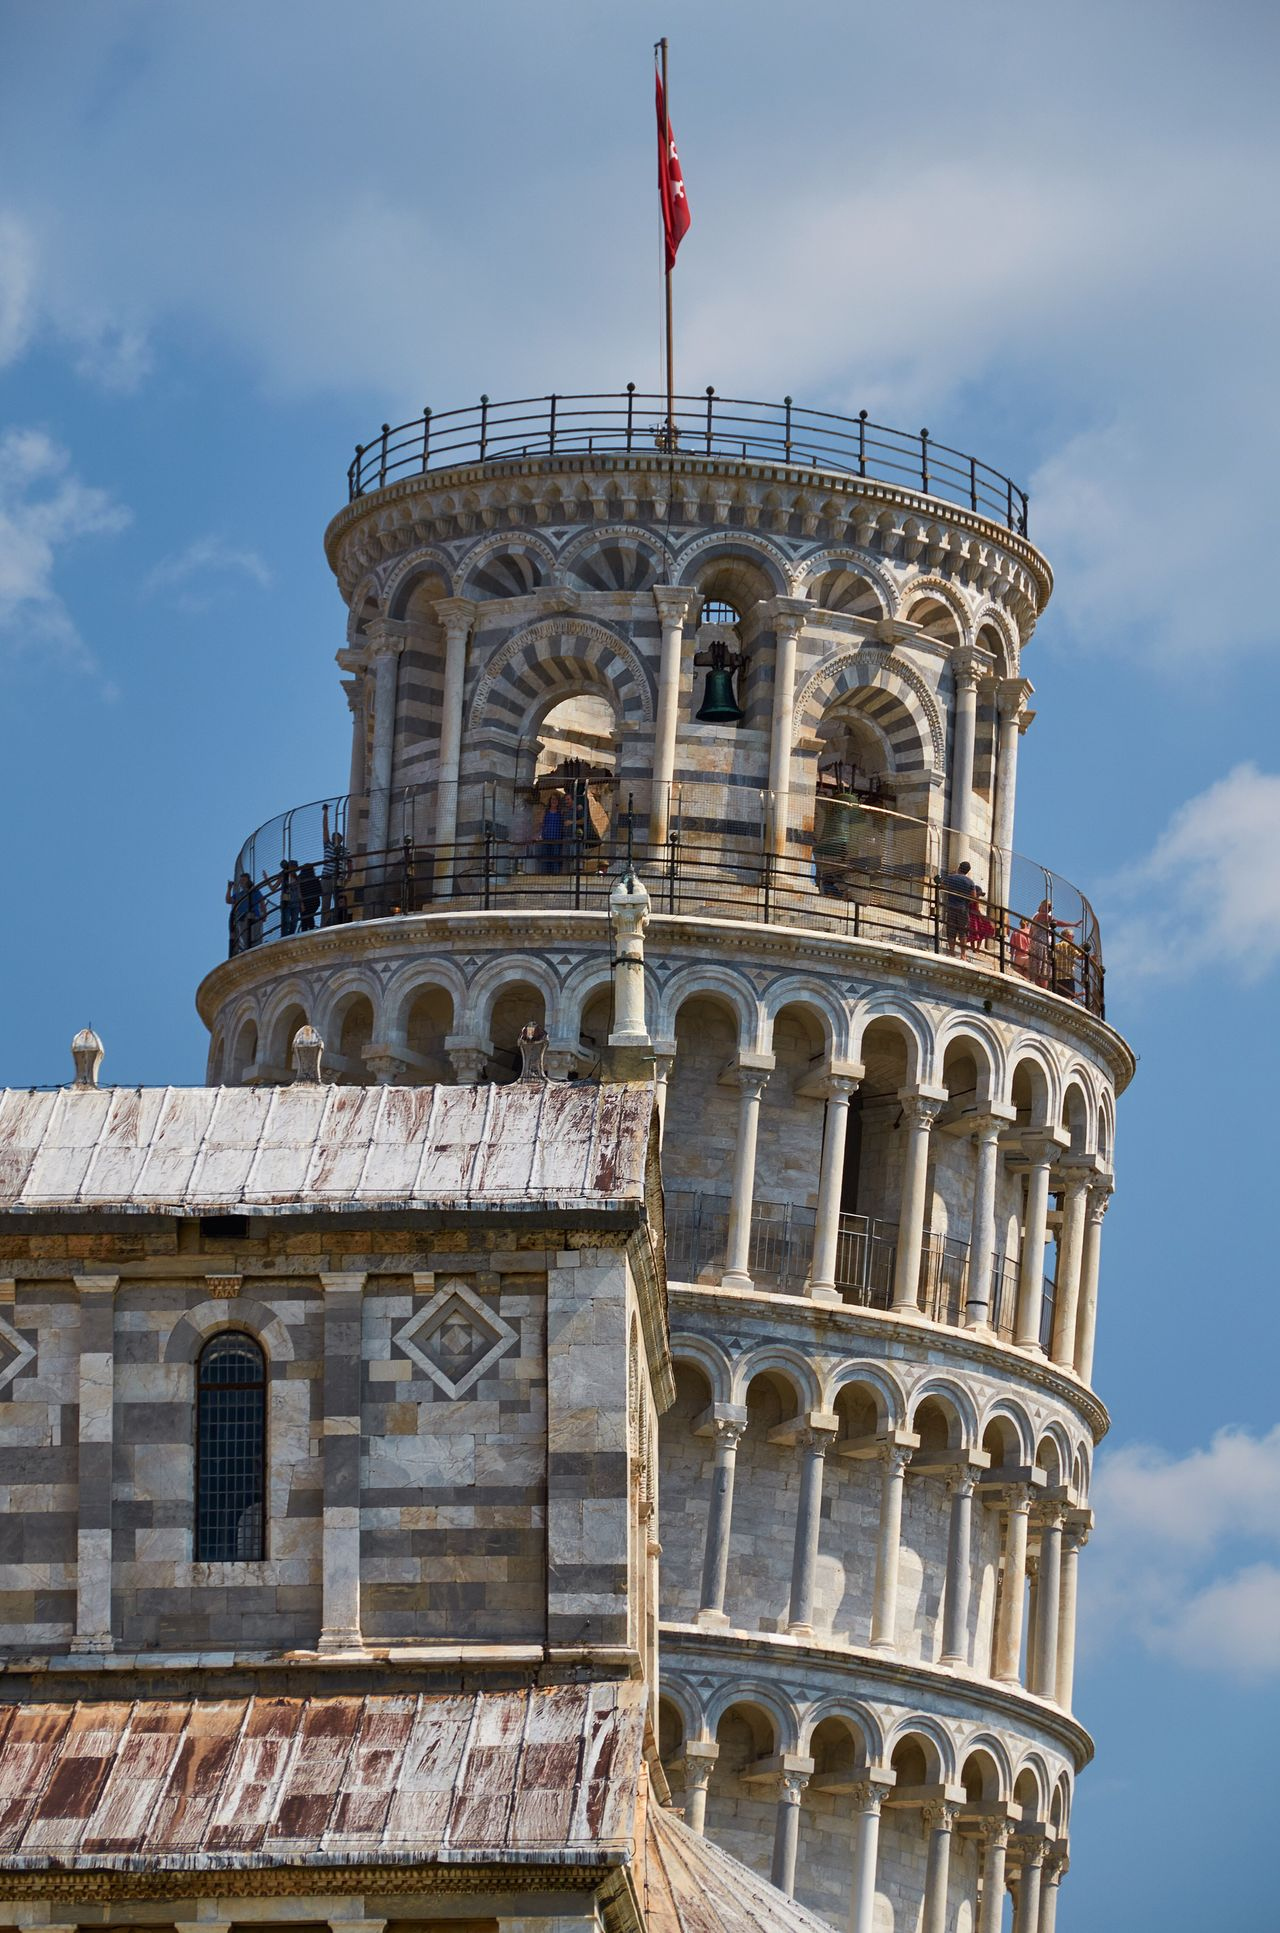 A certain well-known architectural artifact, Pisa Pisa Italy Leaning Tower Of Pisa Tower Architecture Medieval Medieval Architecture Stone Marble World Heritage Landmark Blue Sky Historic Historical Building Built Structure Building Exterior Flag Travel Destinations History Outdoors Church Cathedral Duomo Arch Railing